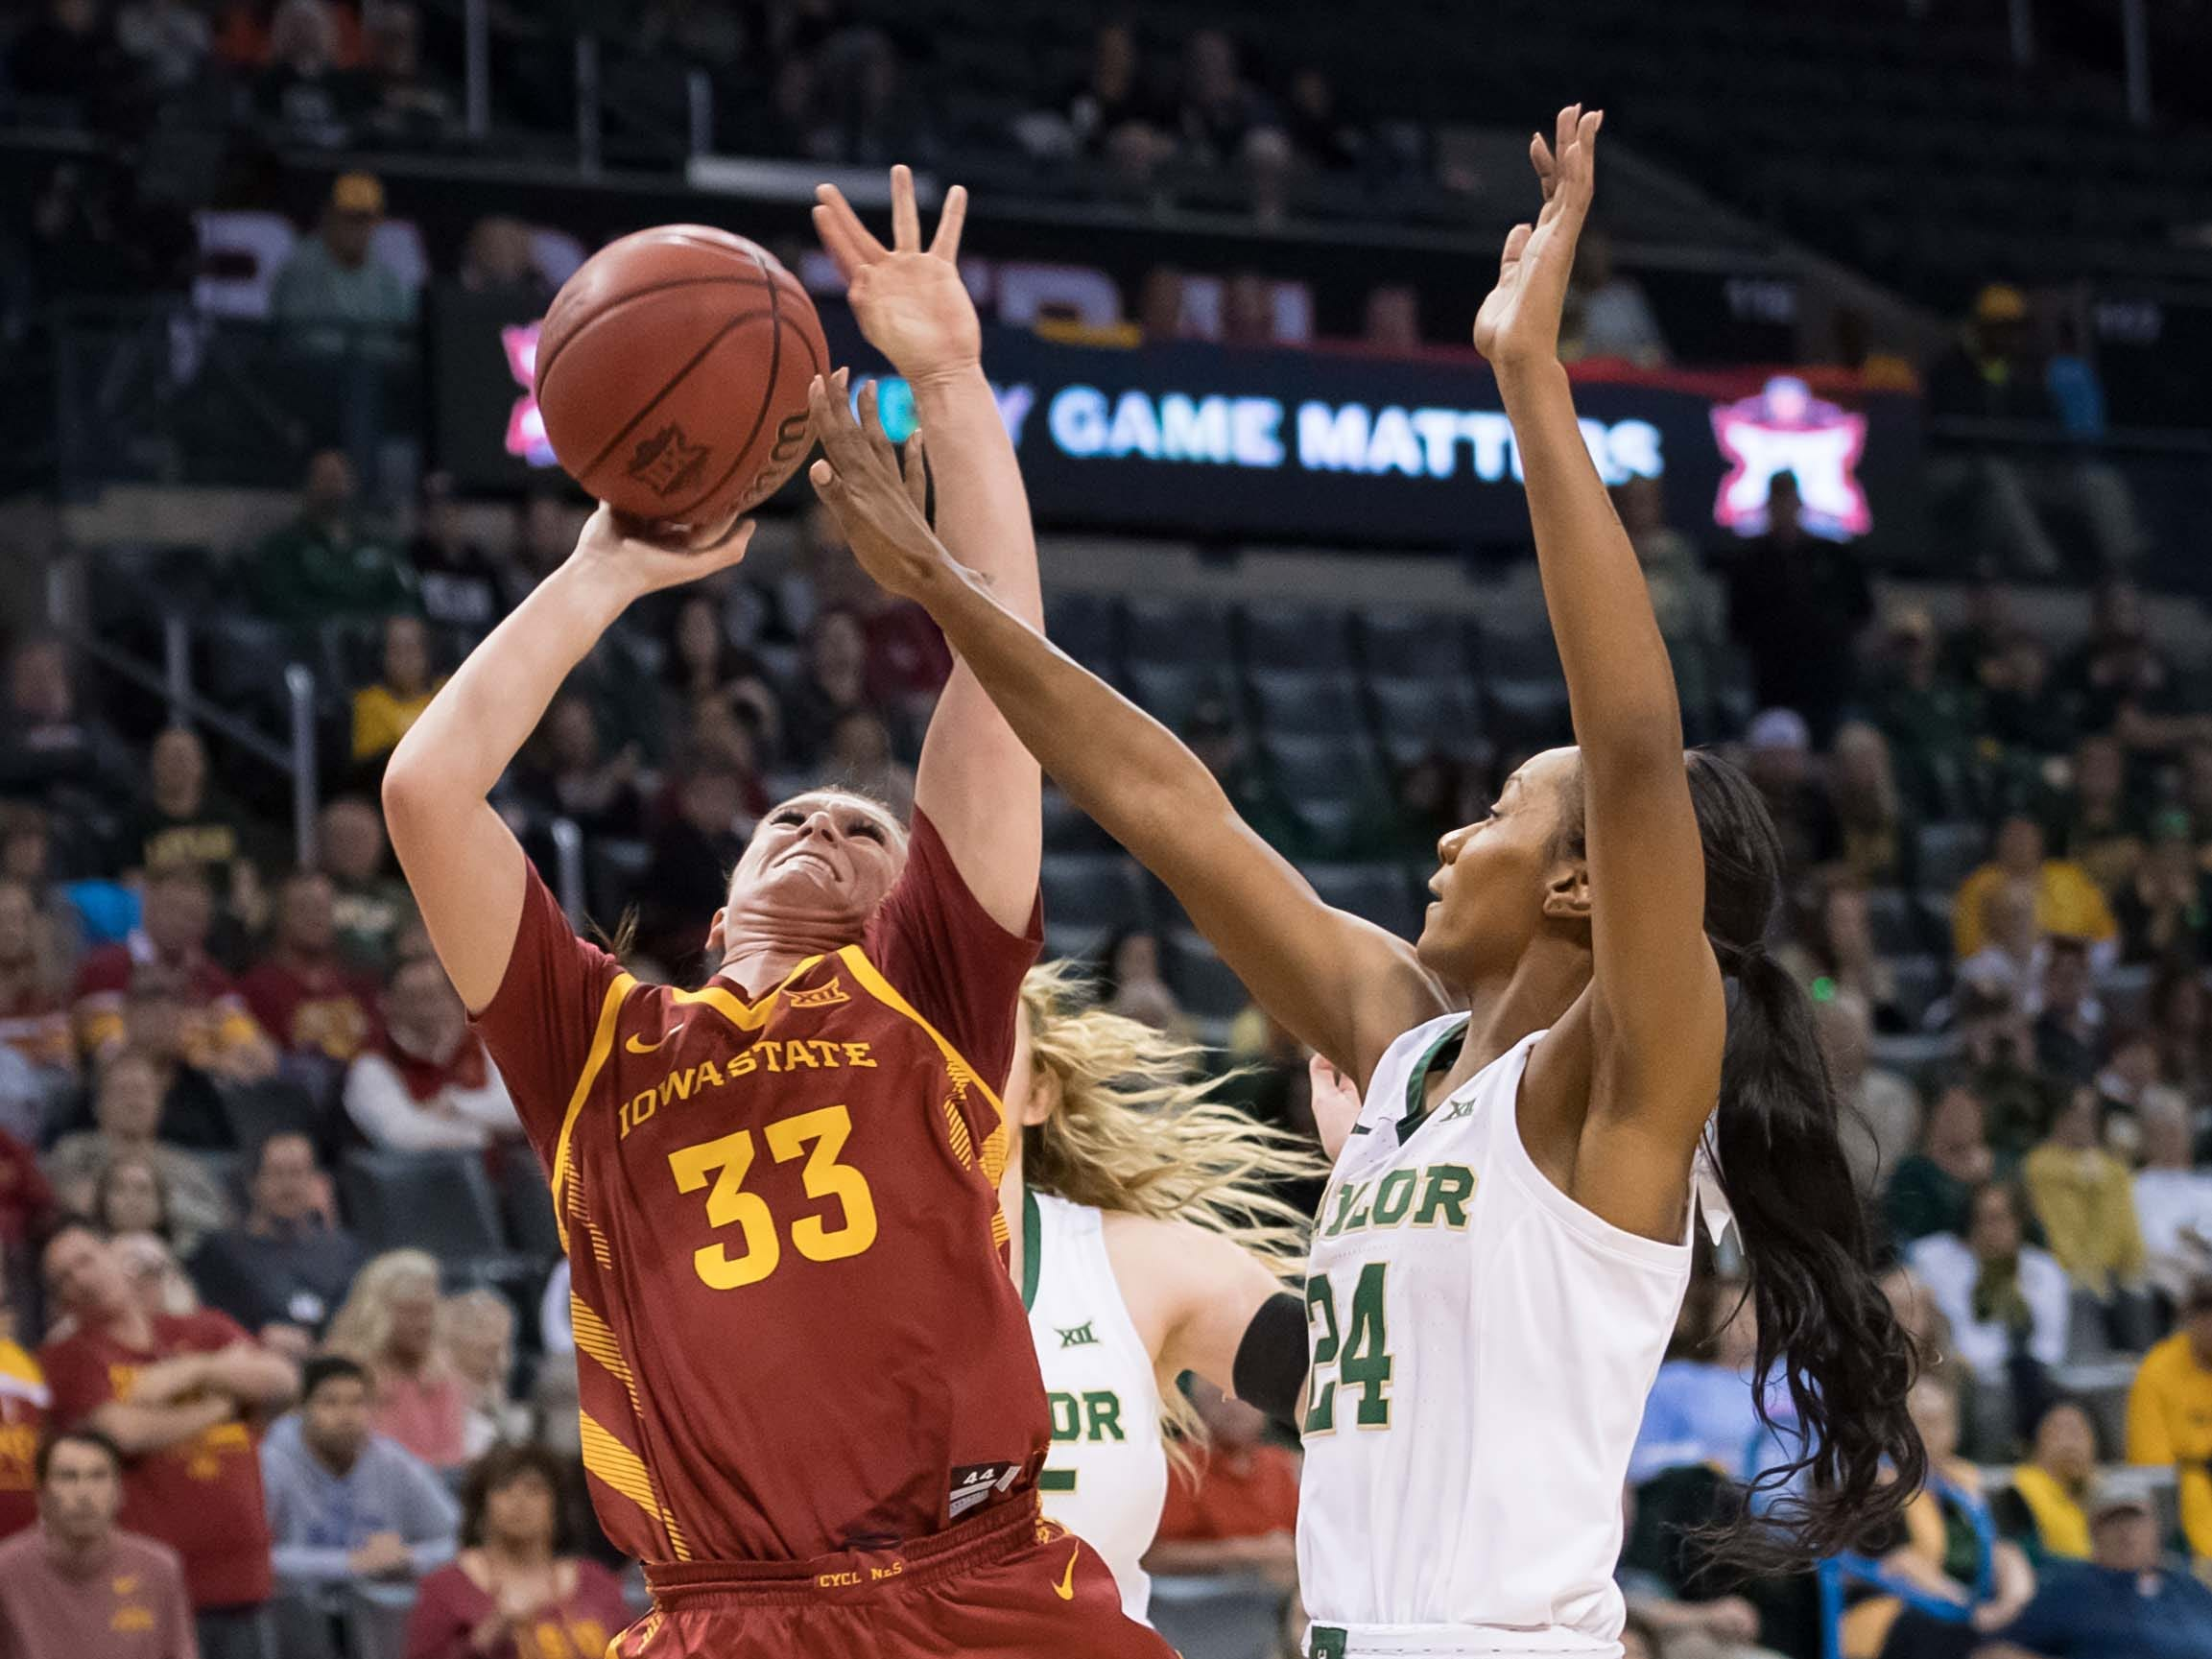 Iowa State Cyclones guard Alexa Middleton (33) shoots the ball while defended by Baylor Lady Bears guard Chloe Jackson (24) during the third quarter in the women's Big 12 Conference Tournament at Chesapeake Energy Arena. Baylor won 67-49.